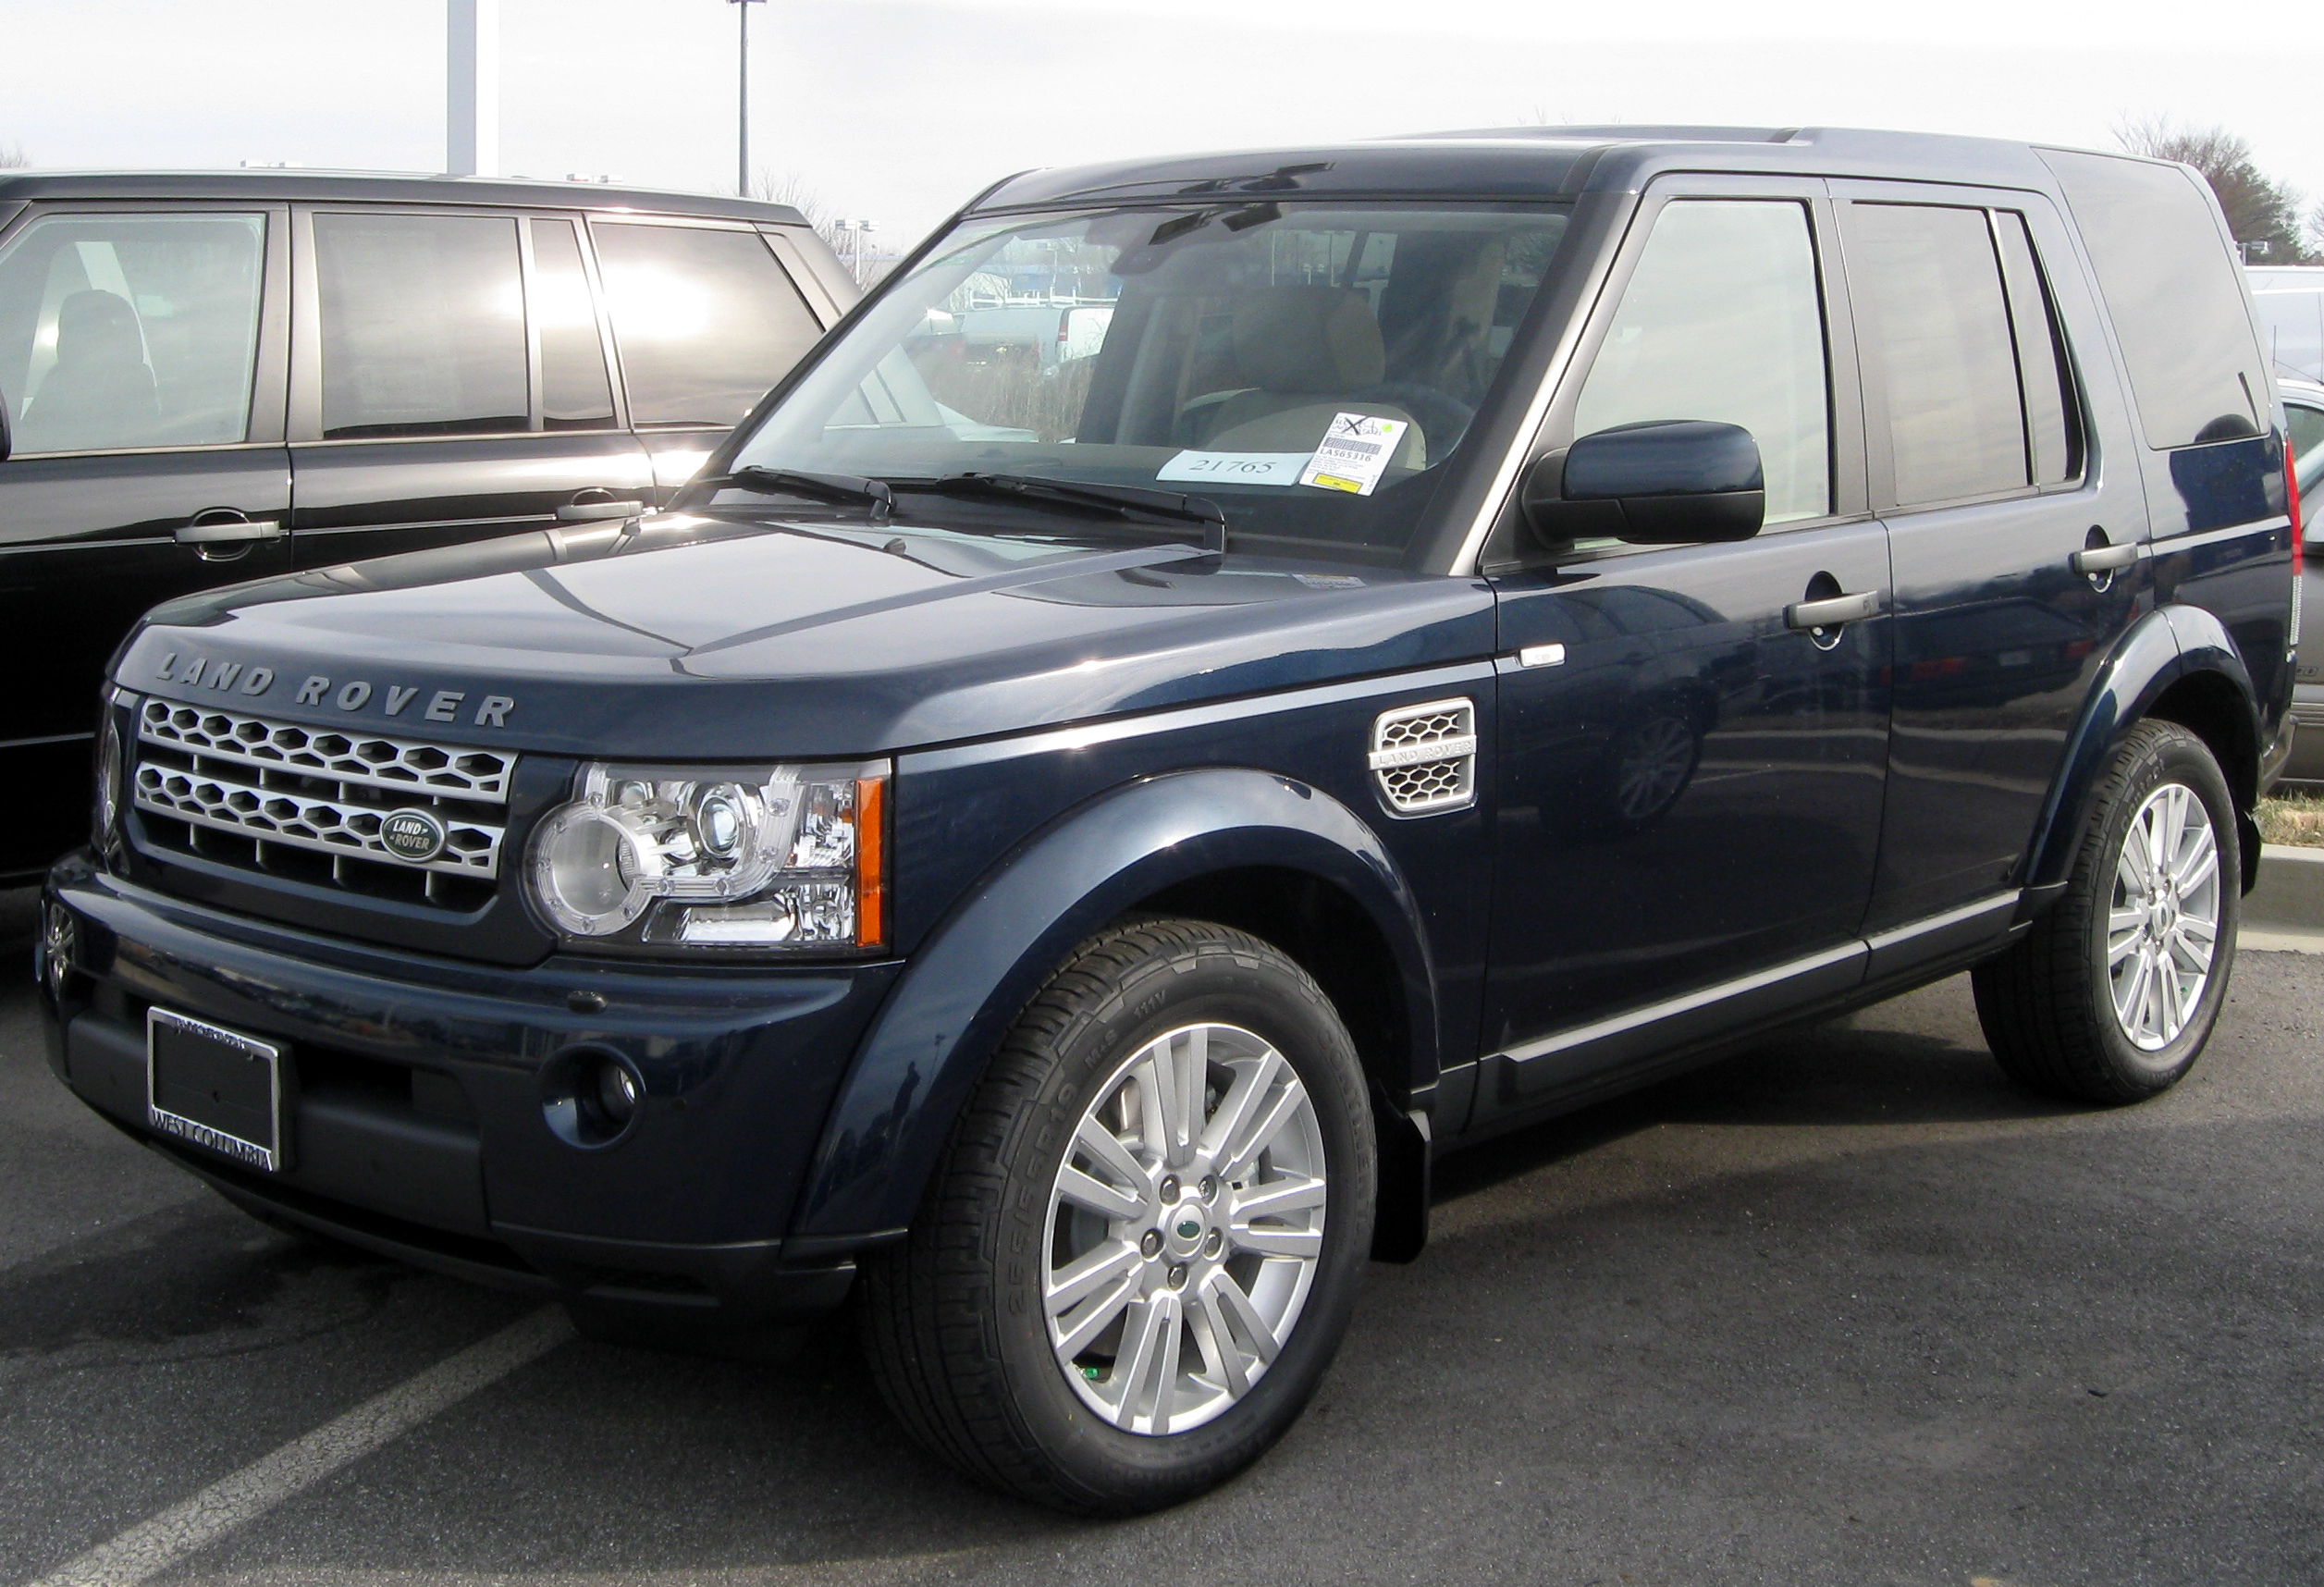 land rover discovery land rover discovery. Black Bedroom Furniture Sets. Home Design Ideas